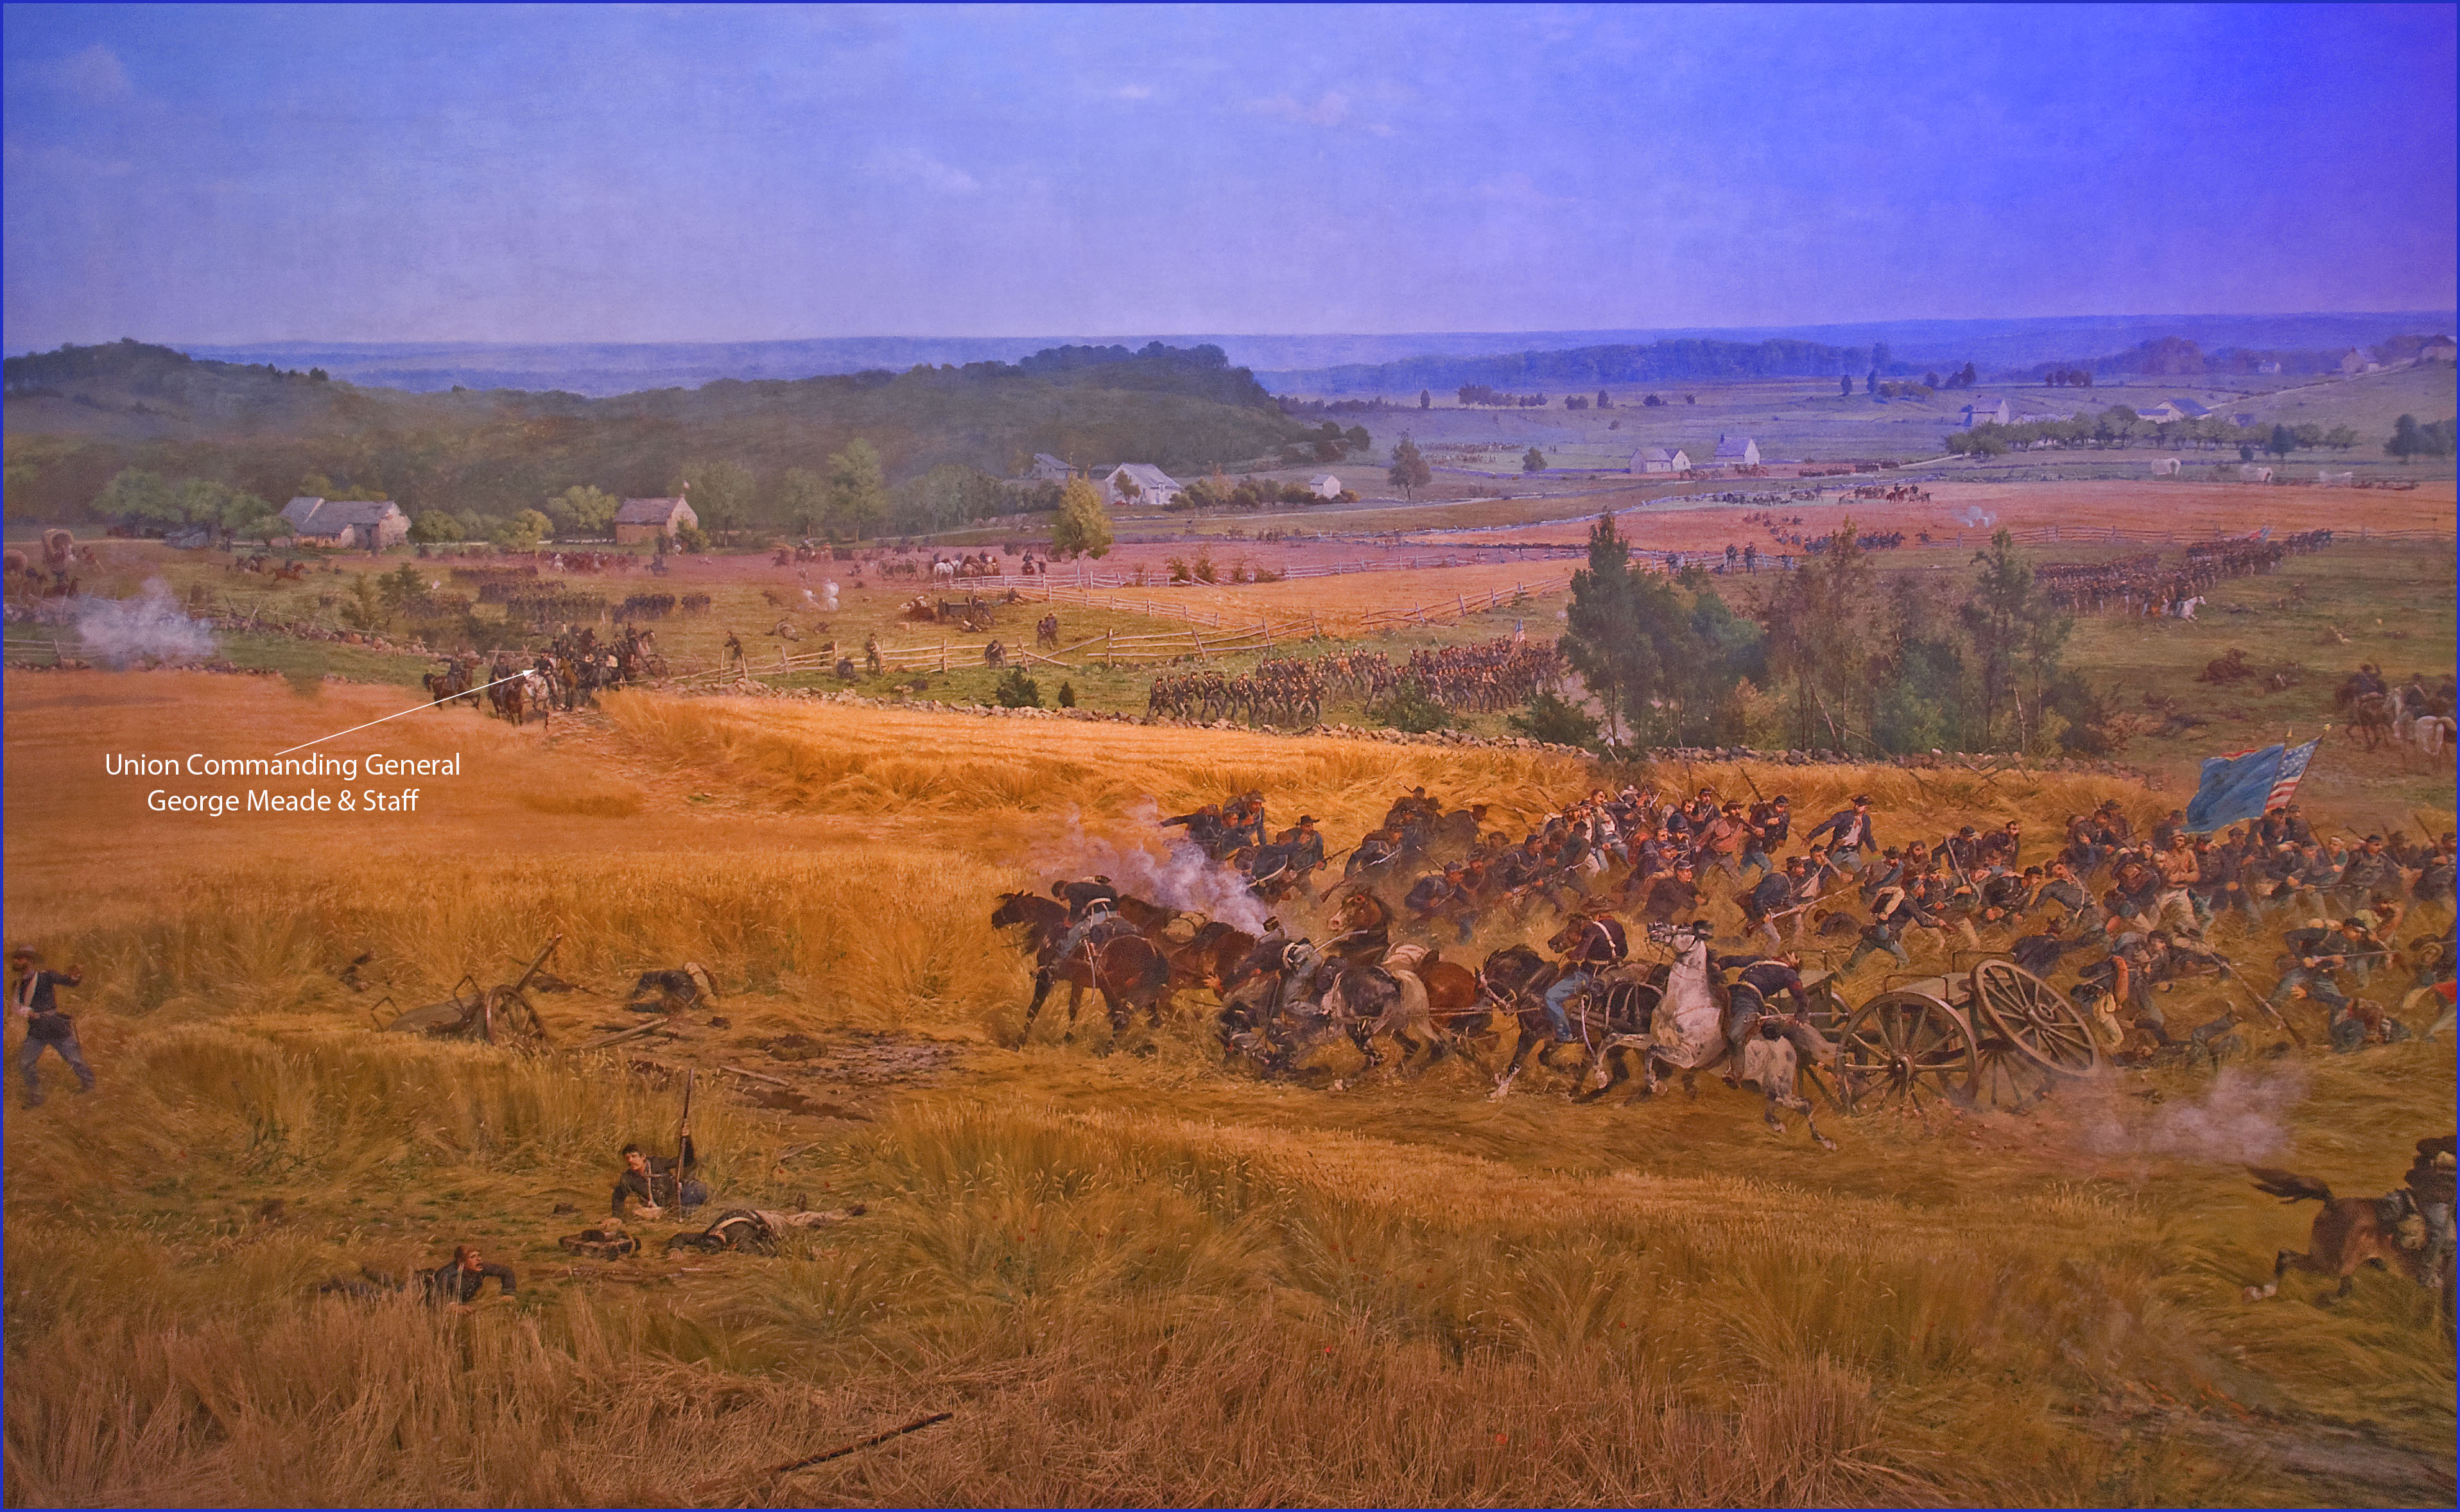 an overview of the infamous battle of gettysburg This paper provides an overview of the battle of gettysburg in general, followed by an assessment of how the roles played by the 26th north carolina and the iron brigade during the first two days of battle helped to influence the outcome.